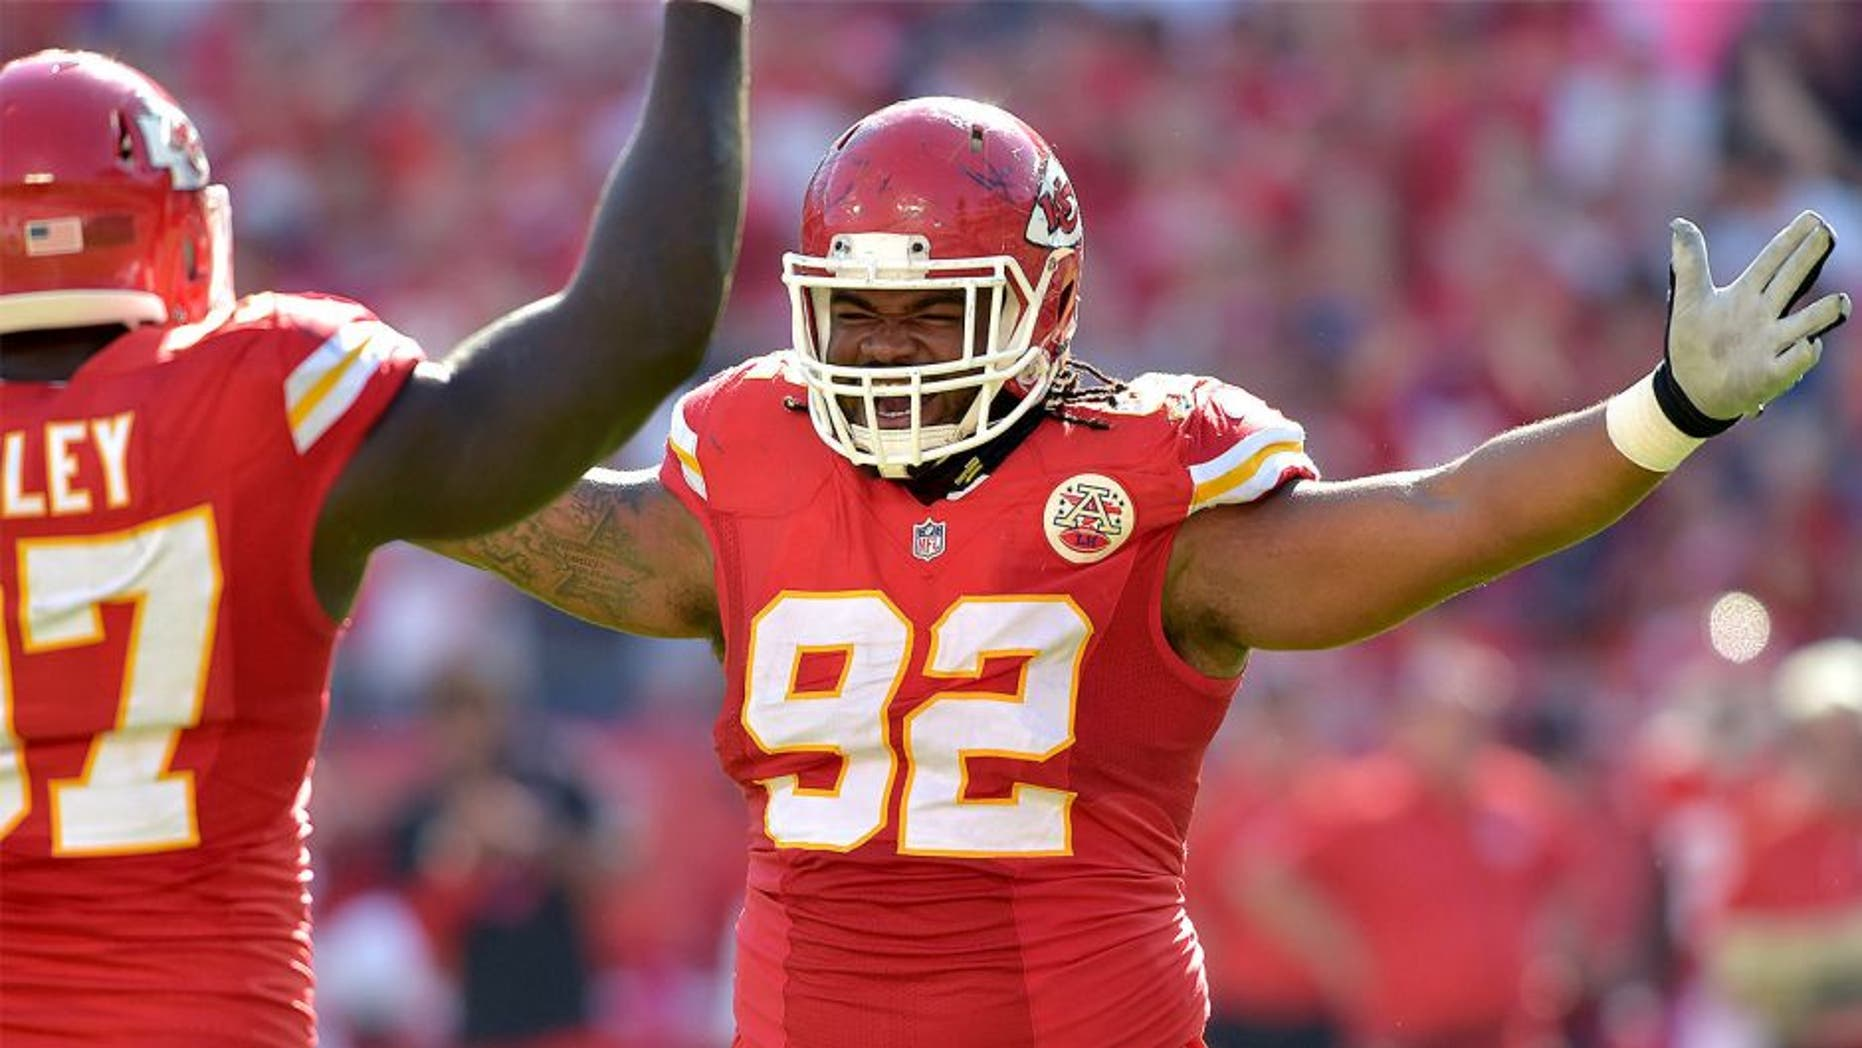 Oct 26, 2014; Kansas City, MO, USA; Kansas City Chiefs nose tackle Dontari Poe (92) congratulates defensive end Allen Bailey (97) after Bailey's sack of St. Louis Rams quarterback Austin Davis (9) (not pictured) during the second half at Arrowhead Stadium. The Chiefs won 34-7. Mandatory Credit: Denny Medley-USA TODAY Sports